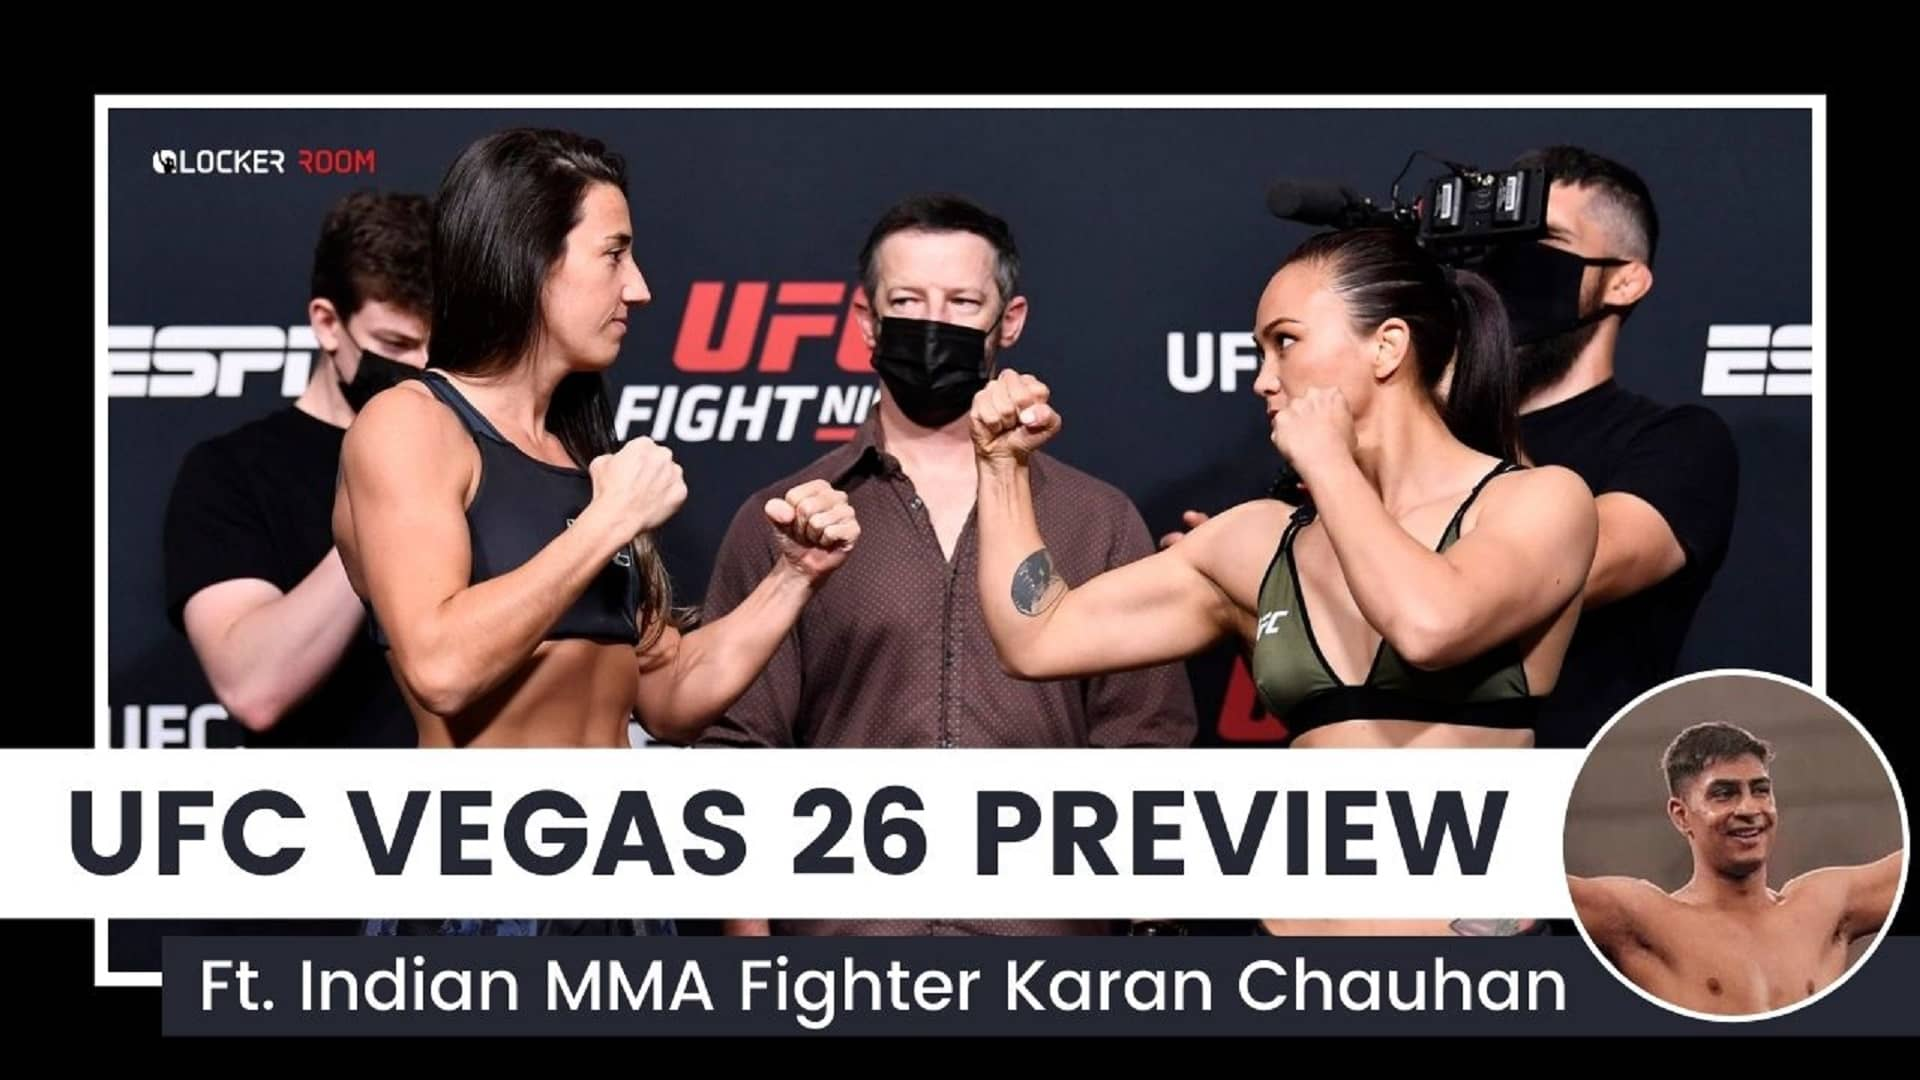 https://lockerroom.in/blog/view/UFC-Vegas-26-Preview-India